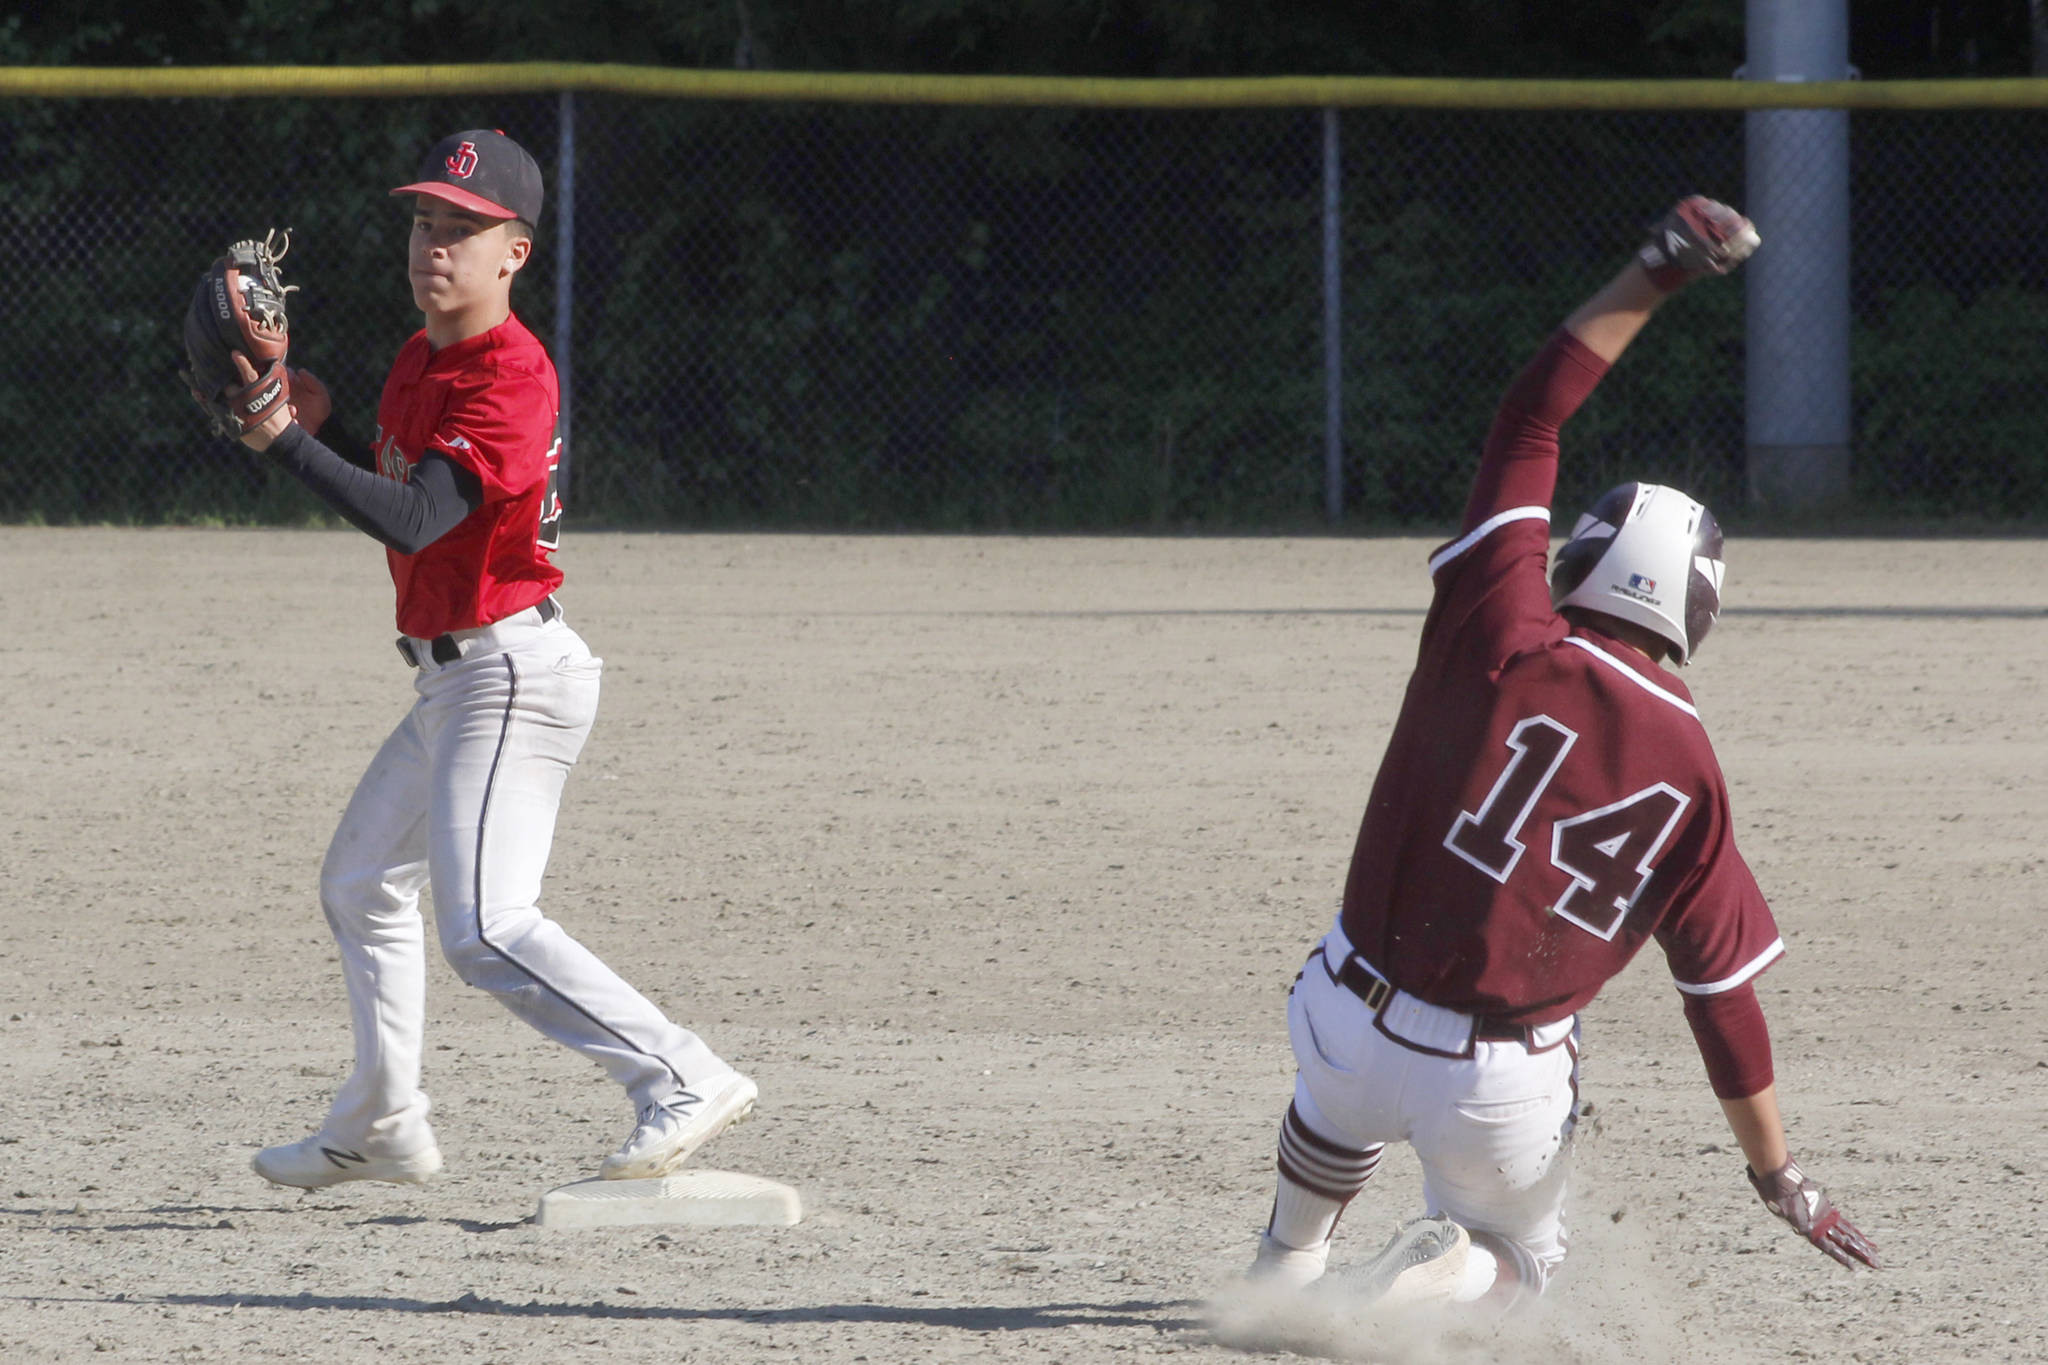 Juneau-Douglas High School: Yadaa.at Kale second baseman Gaby Soto forces out Ketchikan's C.J. Paule during the Region V title game against Ketchikan on Saturday, May 25, 2019. (Alex McCarthy | Juneau Empire)